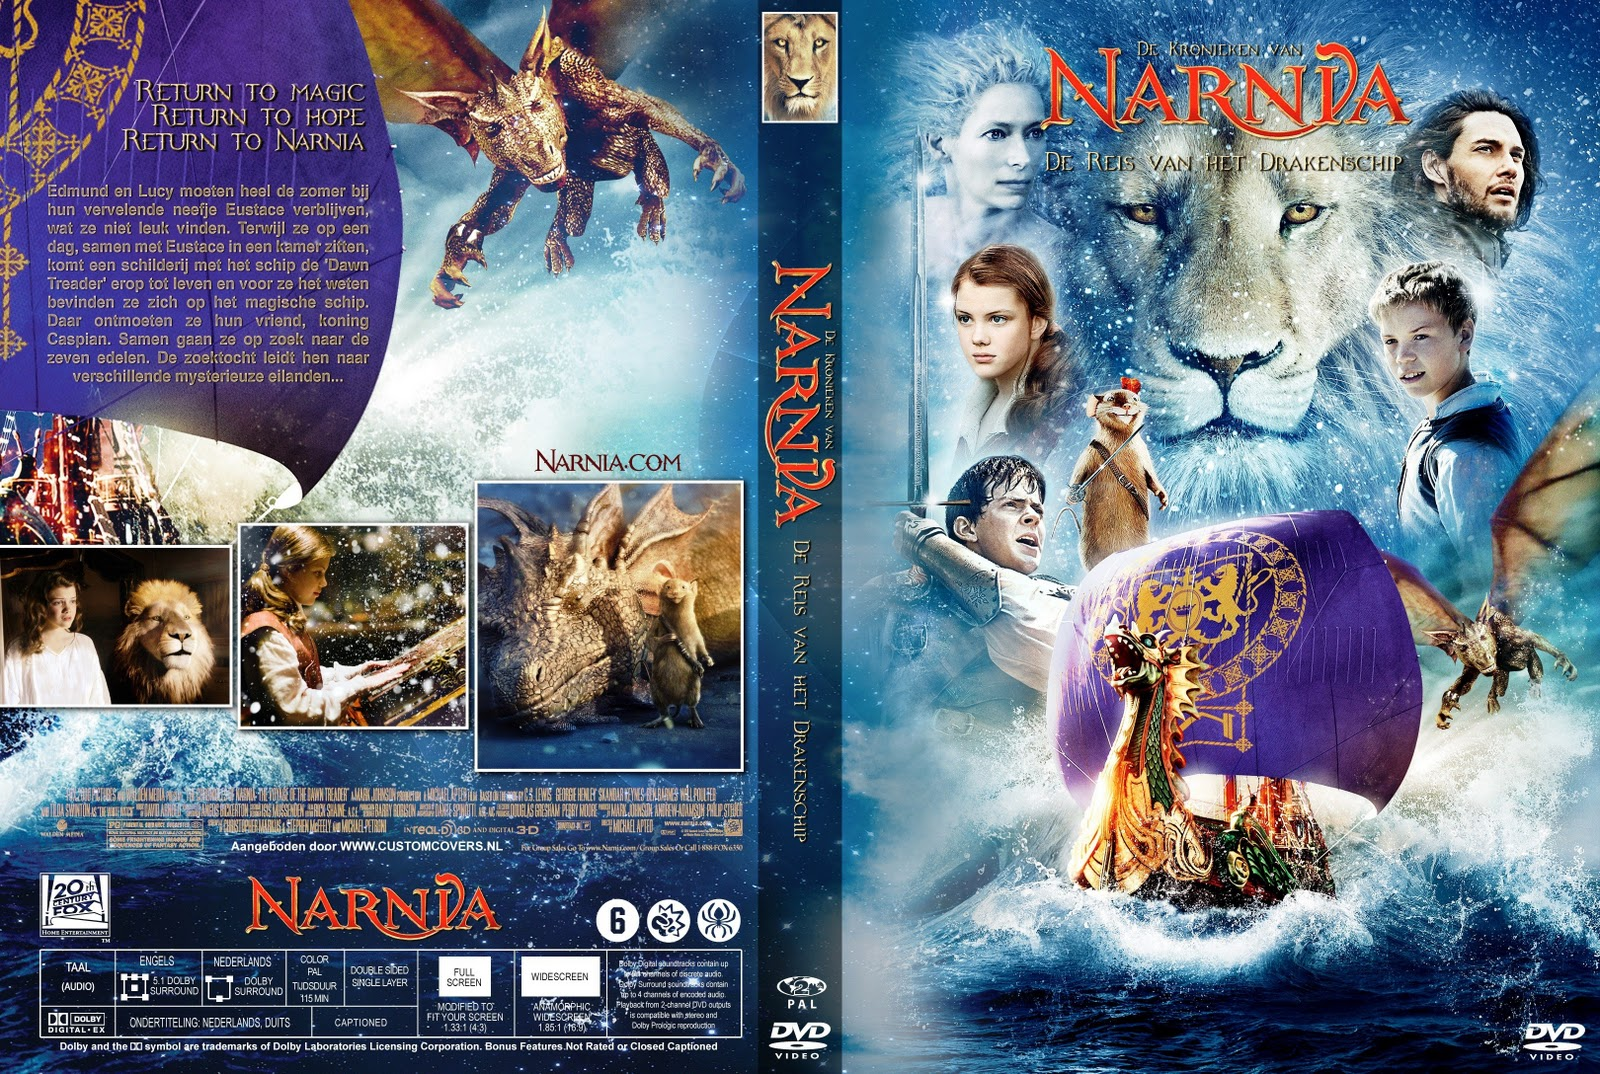 [2010] Chronicles of Narnia - Voyage Of The Dawn Treader (Score)